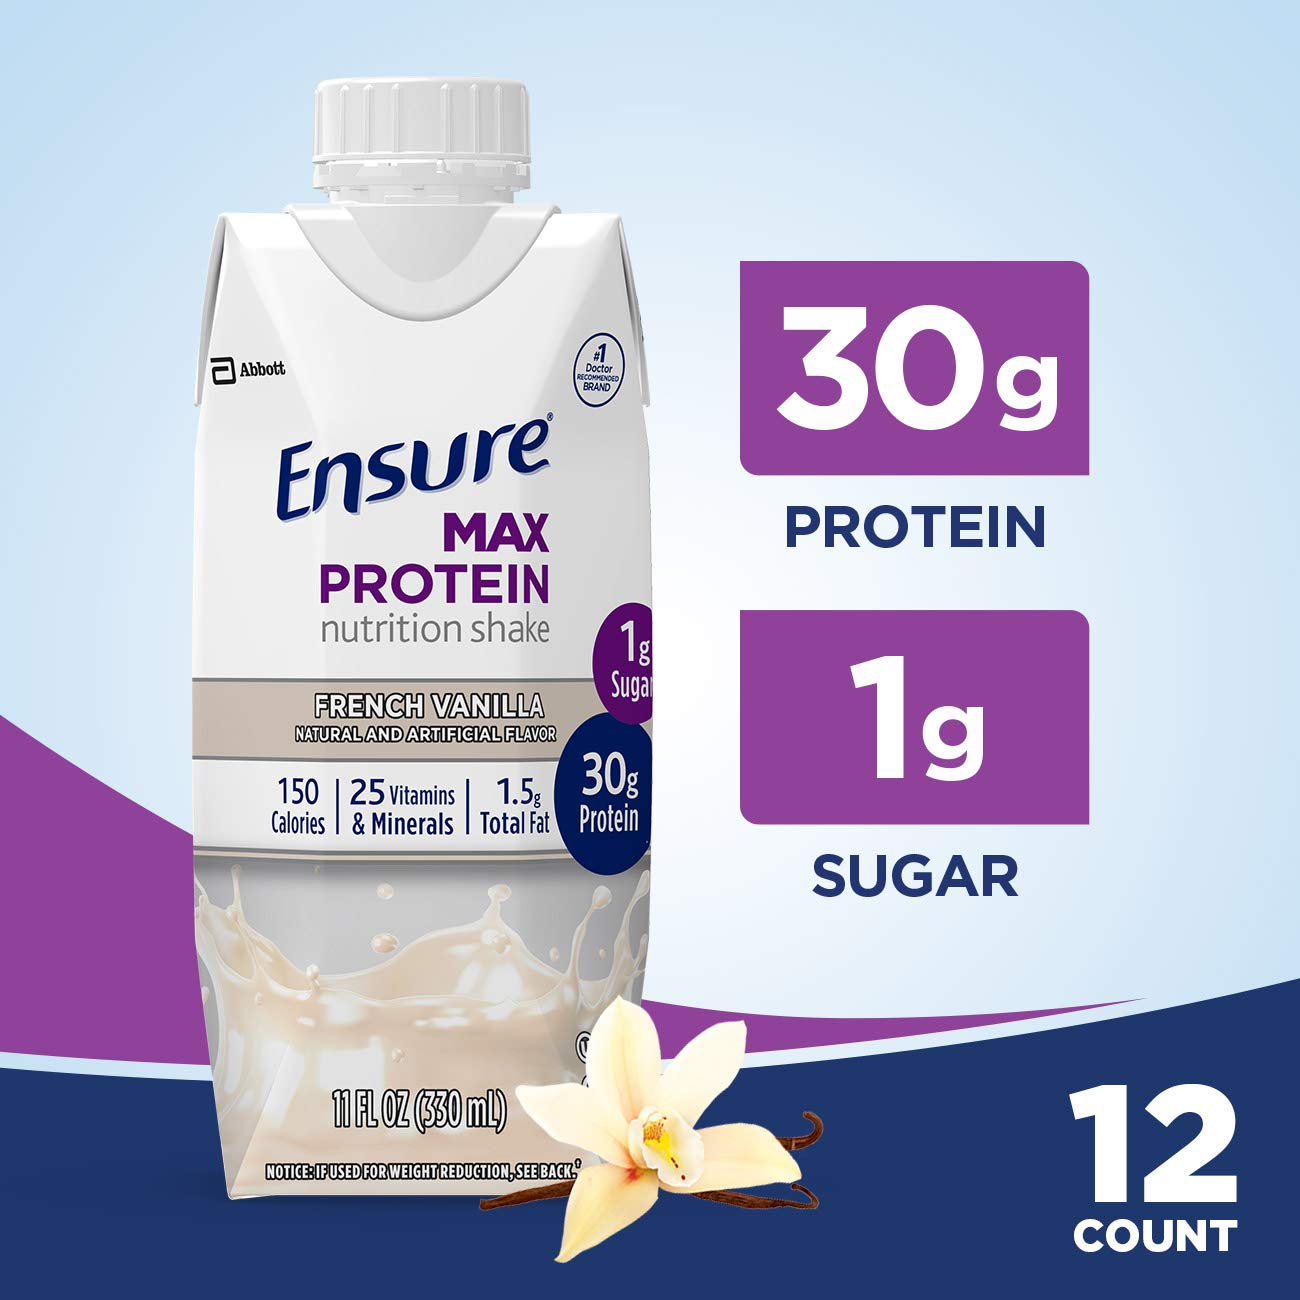 Ensure Max Protein Nutritional Shake with 30g of High-Quality Protein, 1g of Sugar, High Protein Shake, French Vanilla, 11 fl oz, 12 Count by Ensure